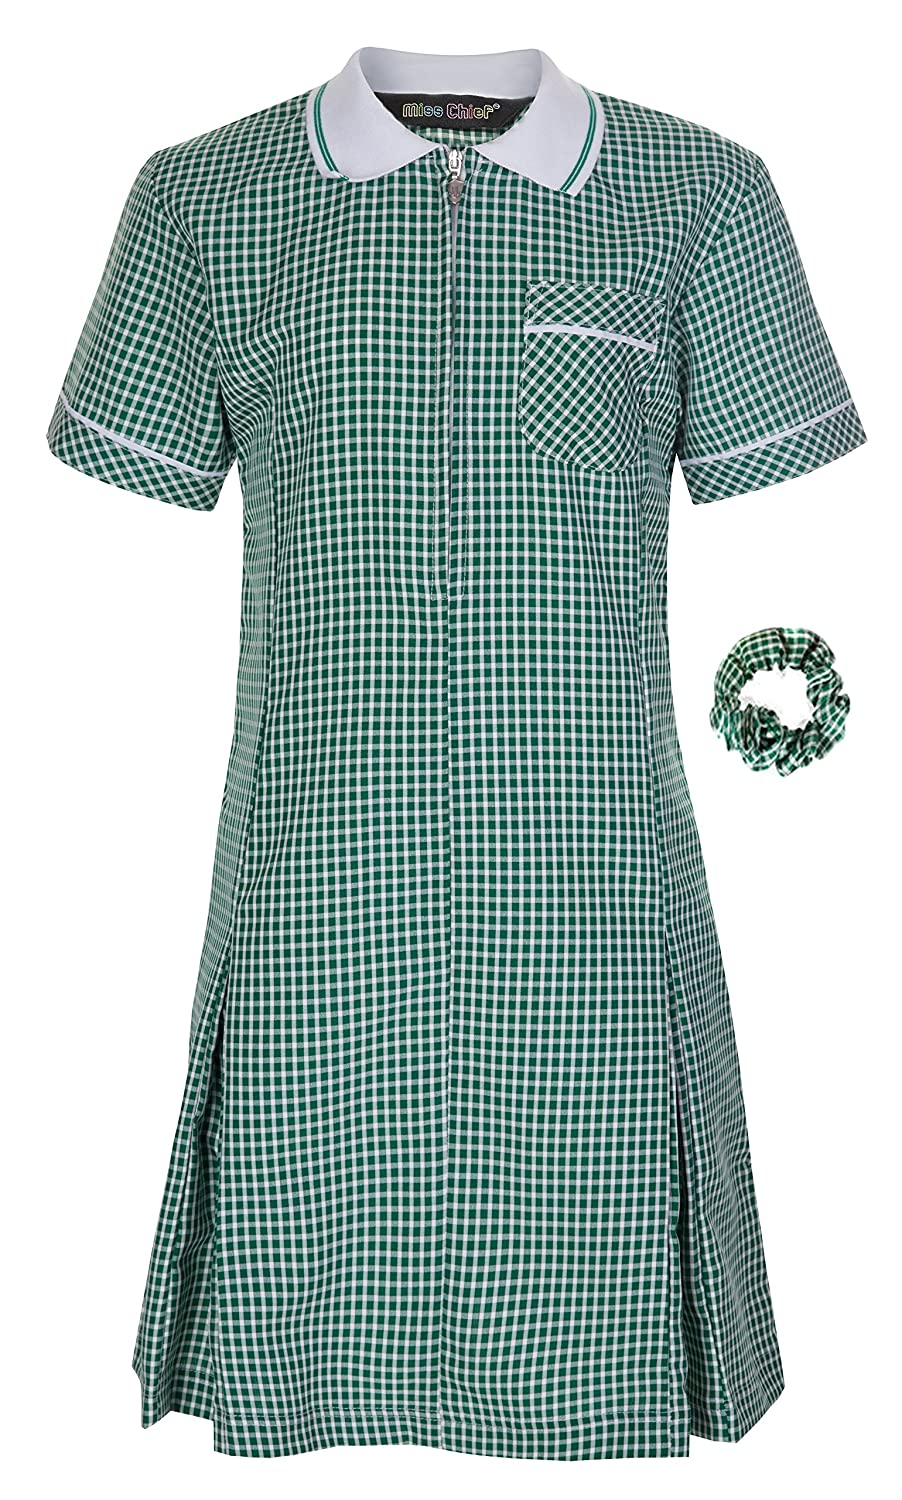 d1d3d5fdd3e Miss Chief Girl s School Gingham Summer Dress Age 3 4 5 6 7 8 9 10 11 12 13  14 15 16 17 18 20 Pleated  Amazon.co.uk  Clothing